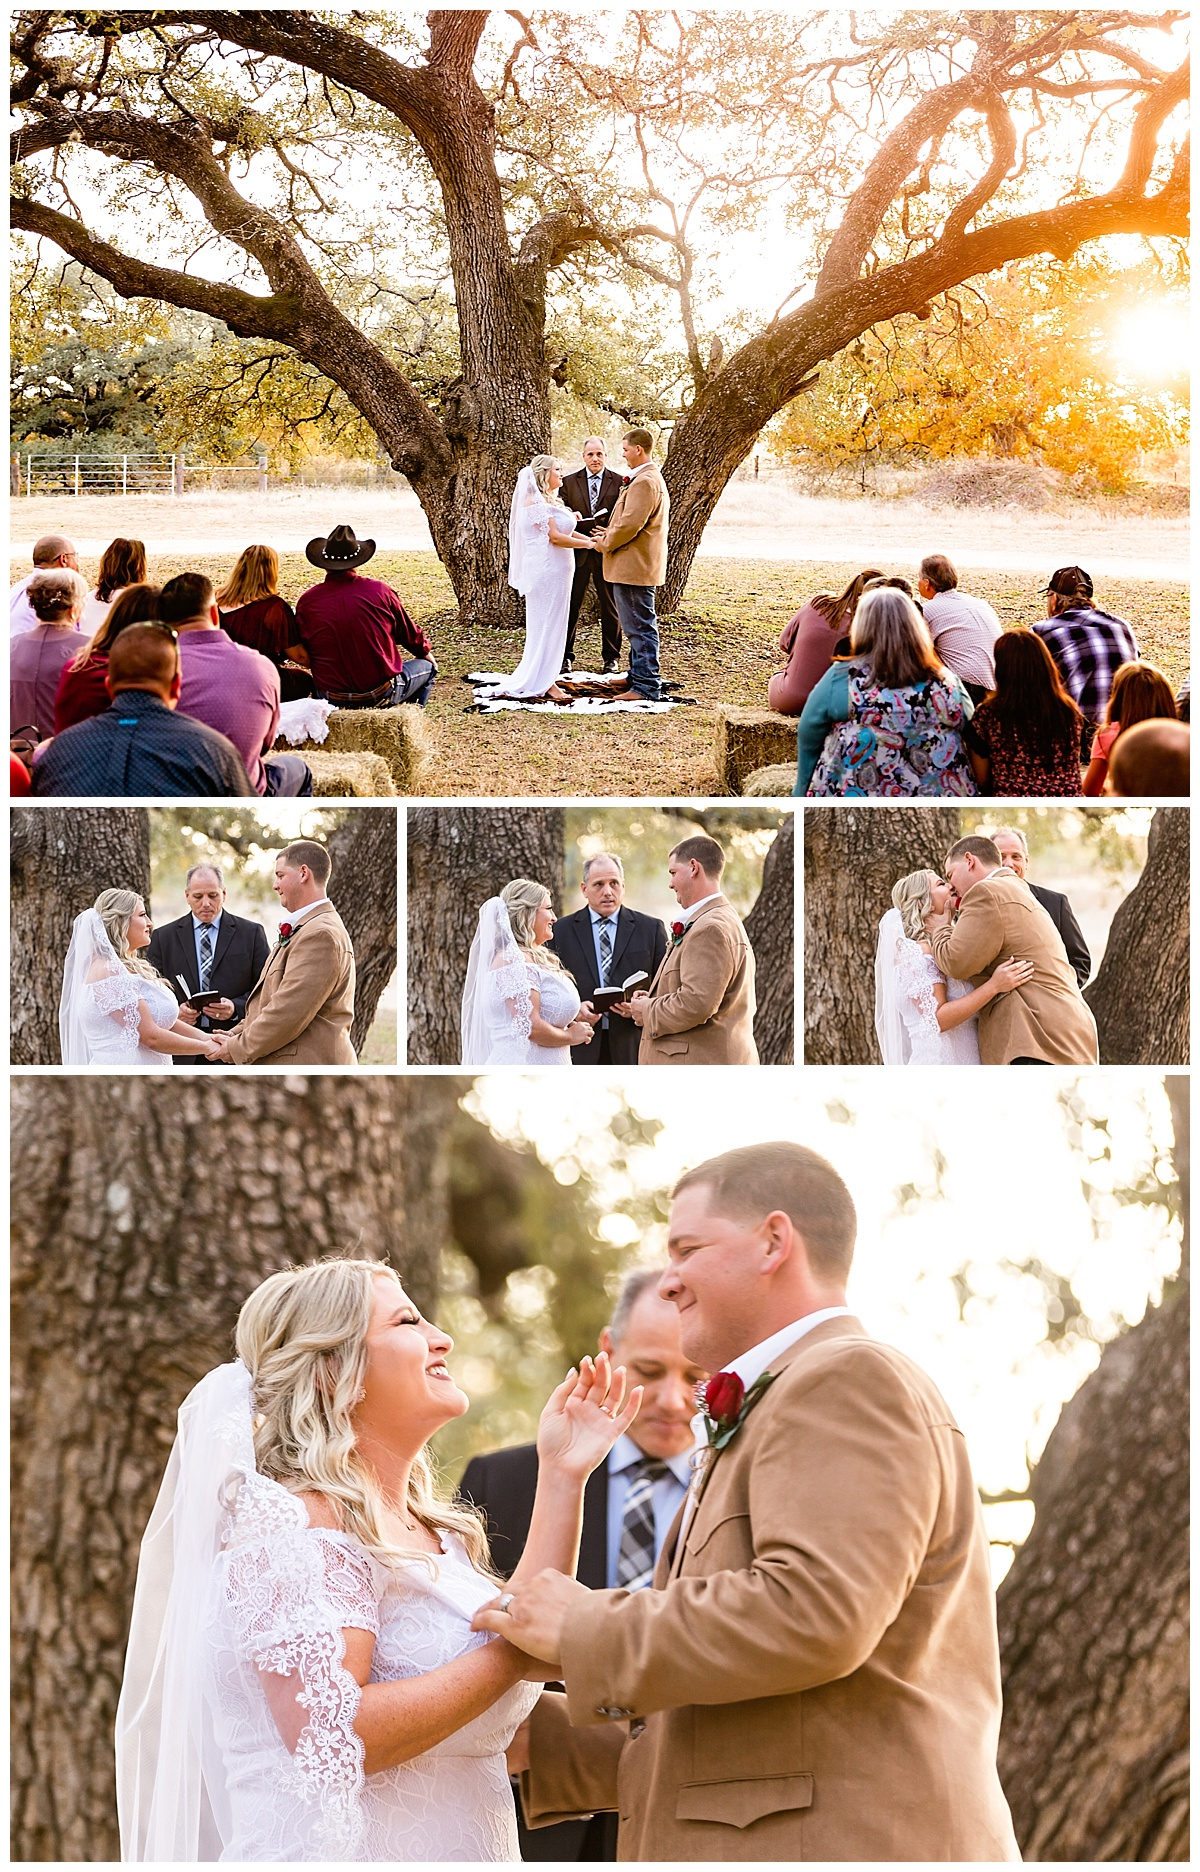 Wedding-Photographer-LaVernia-Texas-Ceremony-Under-the-Trees-Bride-Groom-Fall-McDonald-Carly-Barton-Photography_0012.jpg